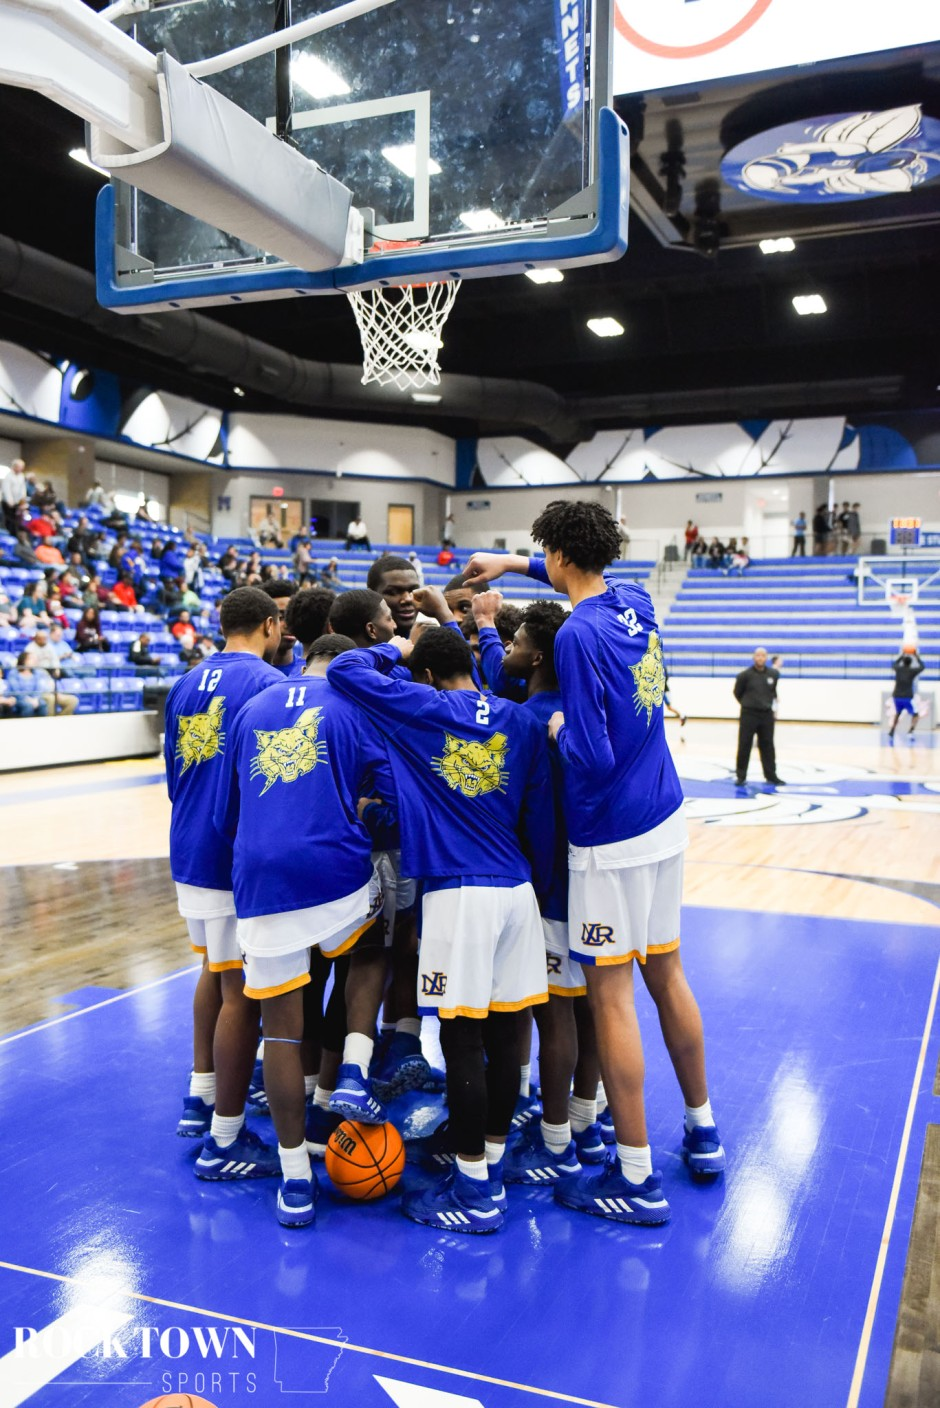 NLR_conway_bball_2020(i)